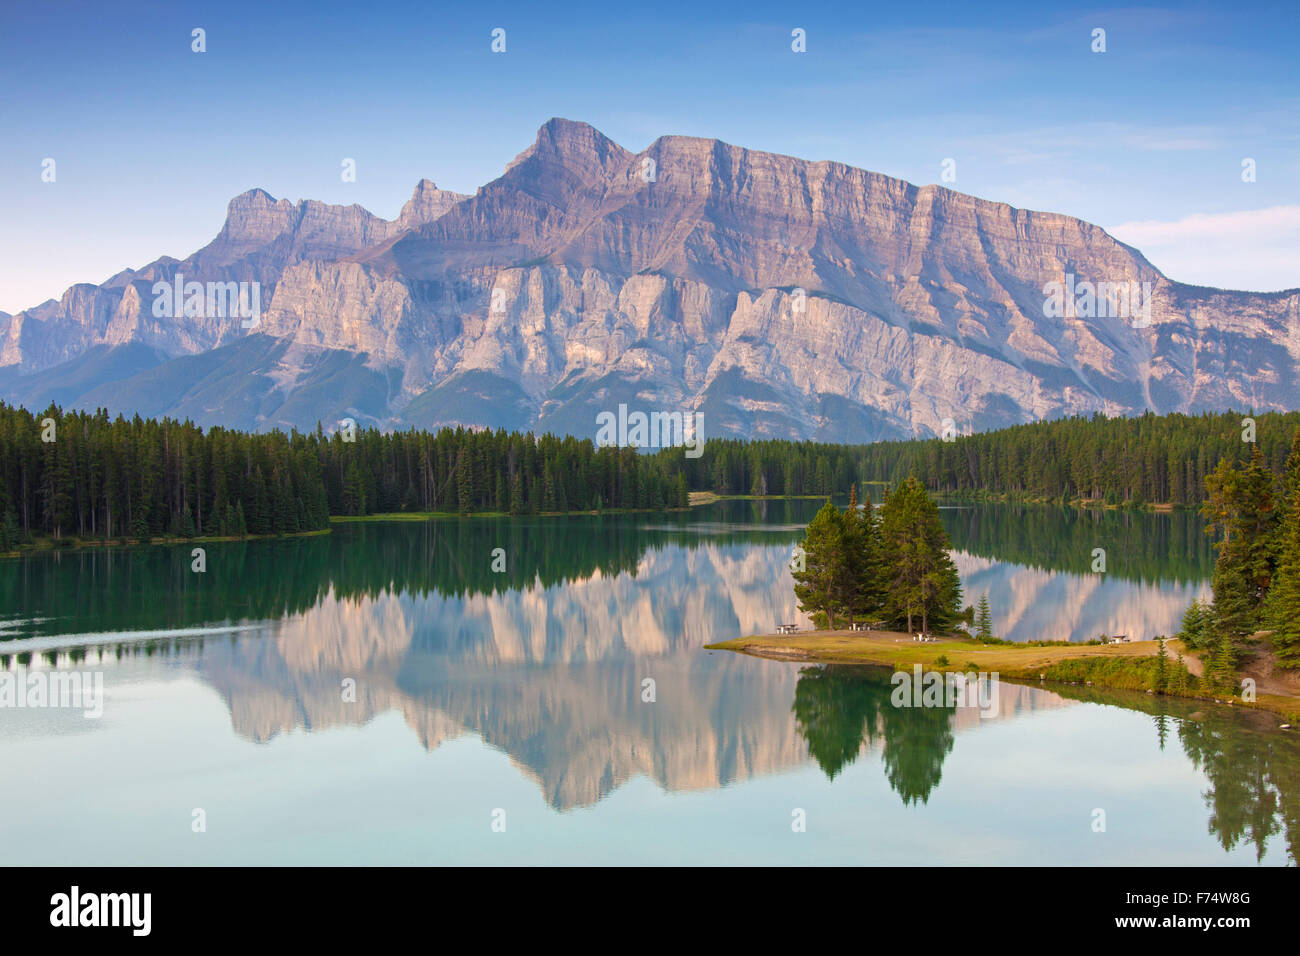 Mount Rundle and Two Jack Lake, Banff National Park, Alberta, Canadian Rockies, Canada - Stock Image